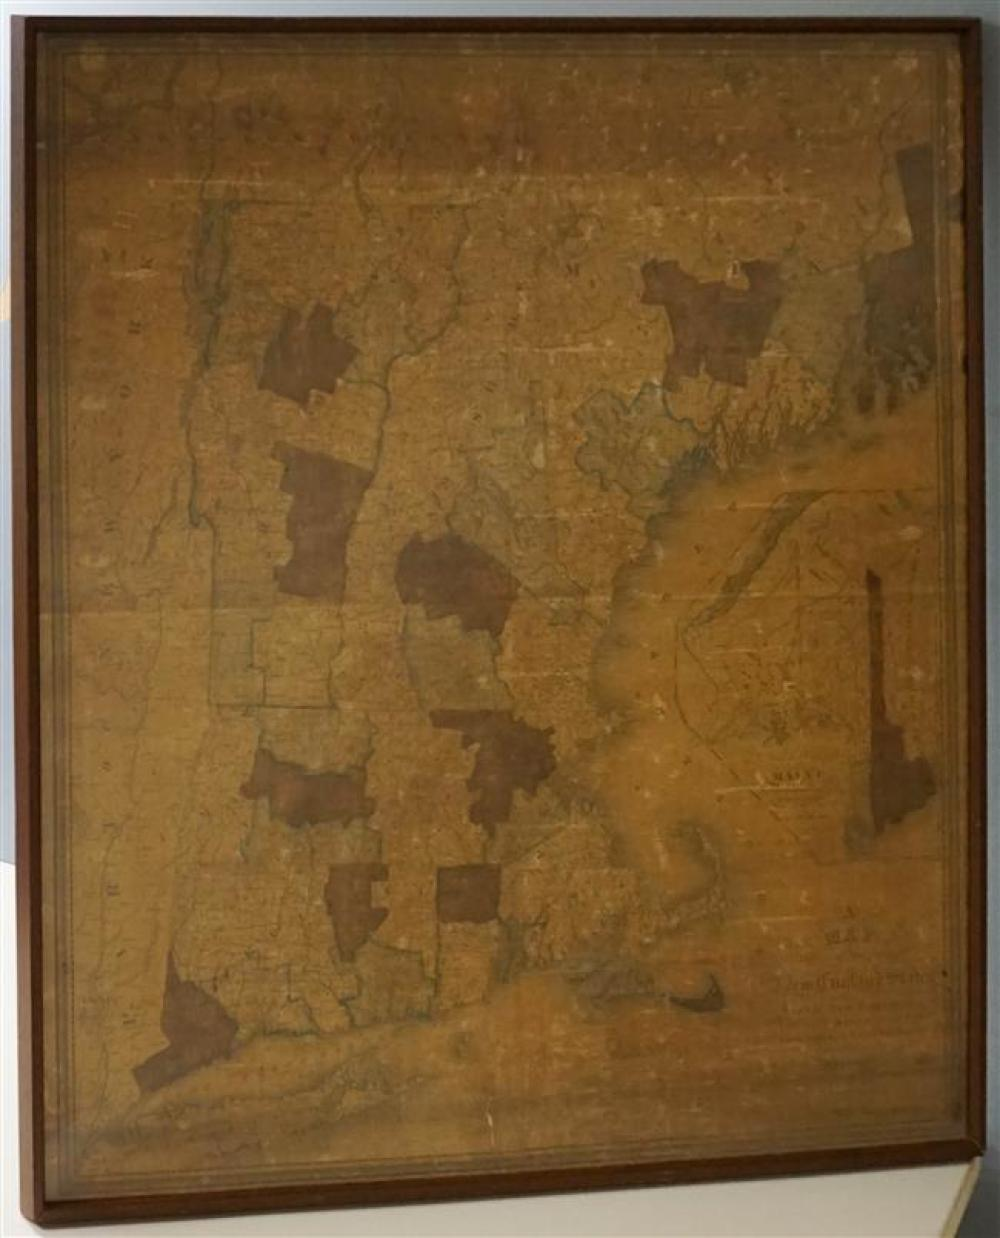 Nathan Hale, Carrographer, Colored Engraved Map of The New England States, Publ. 1820, Framed, 46 x 40-1/4 inches